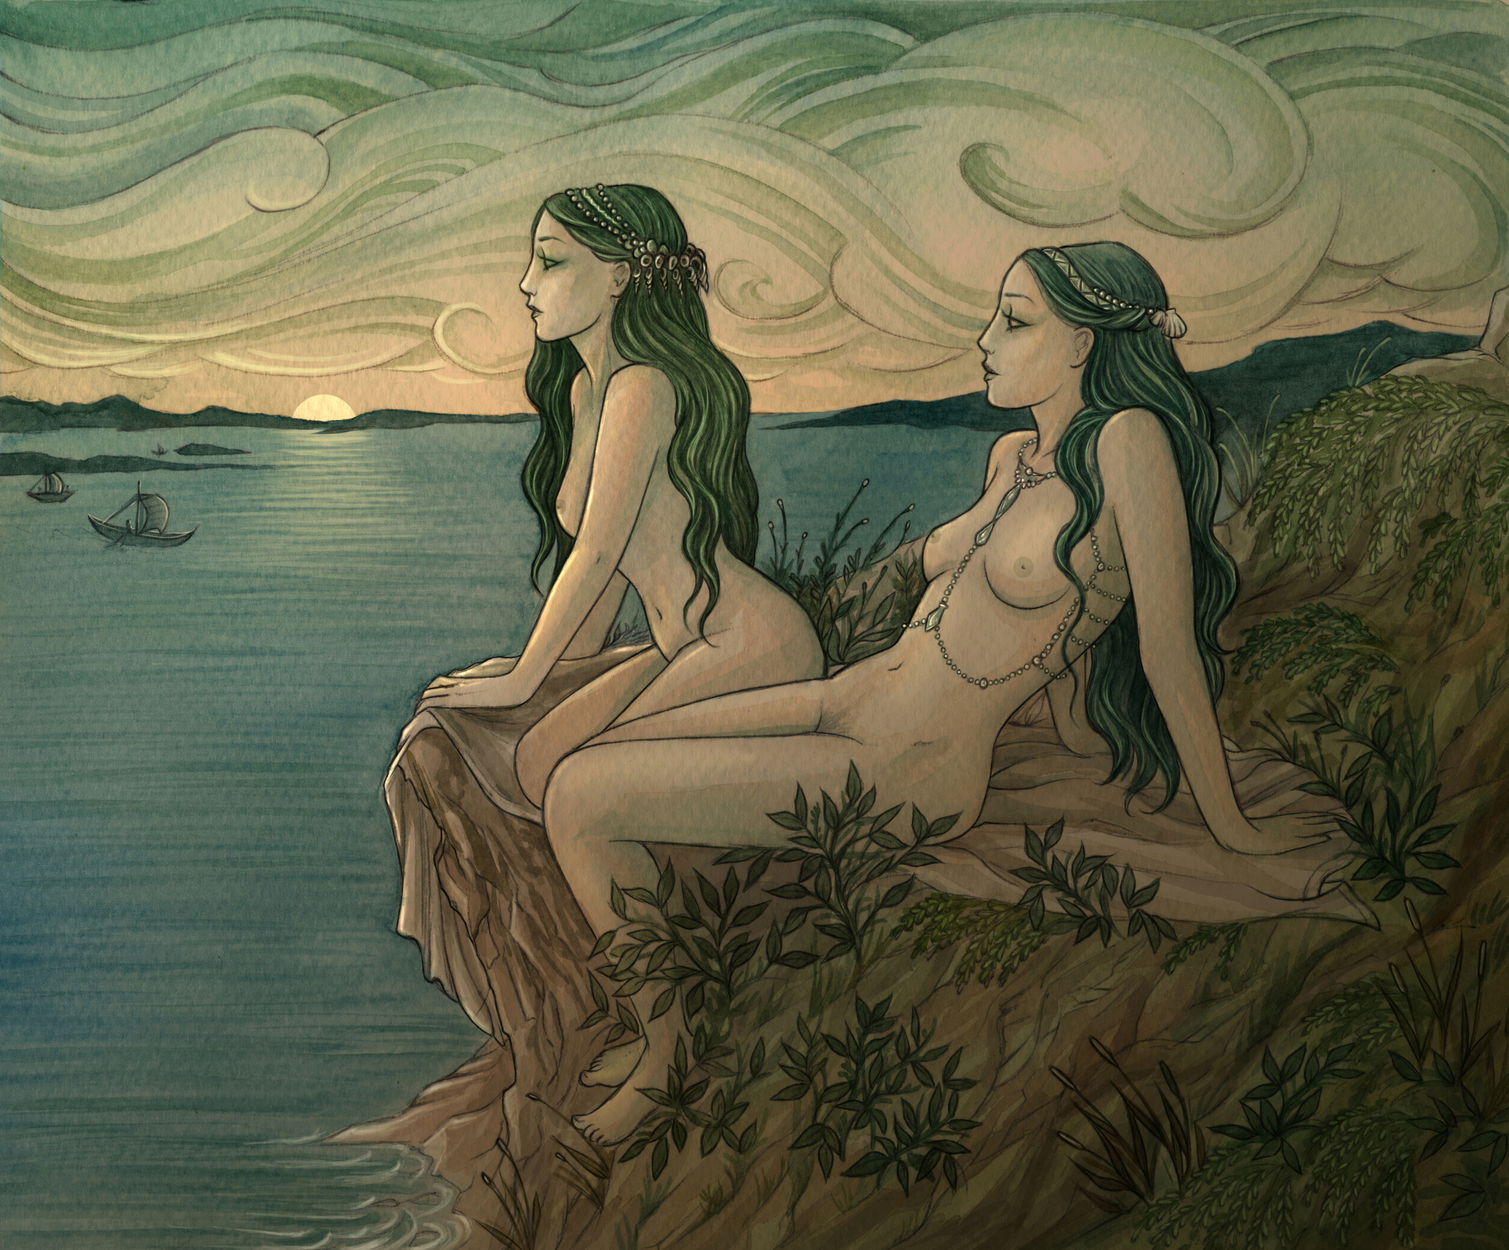 Nereids Artwork by Natasa Ilincic